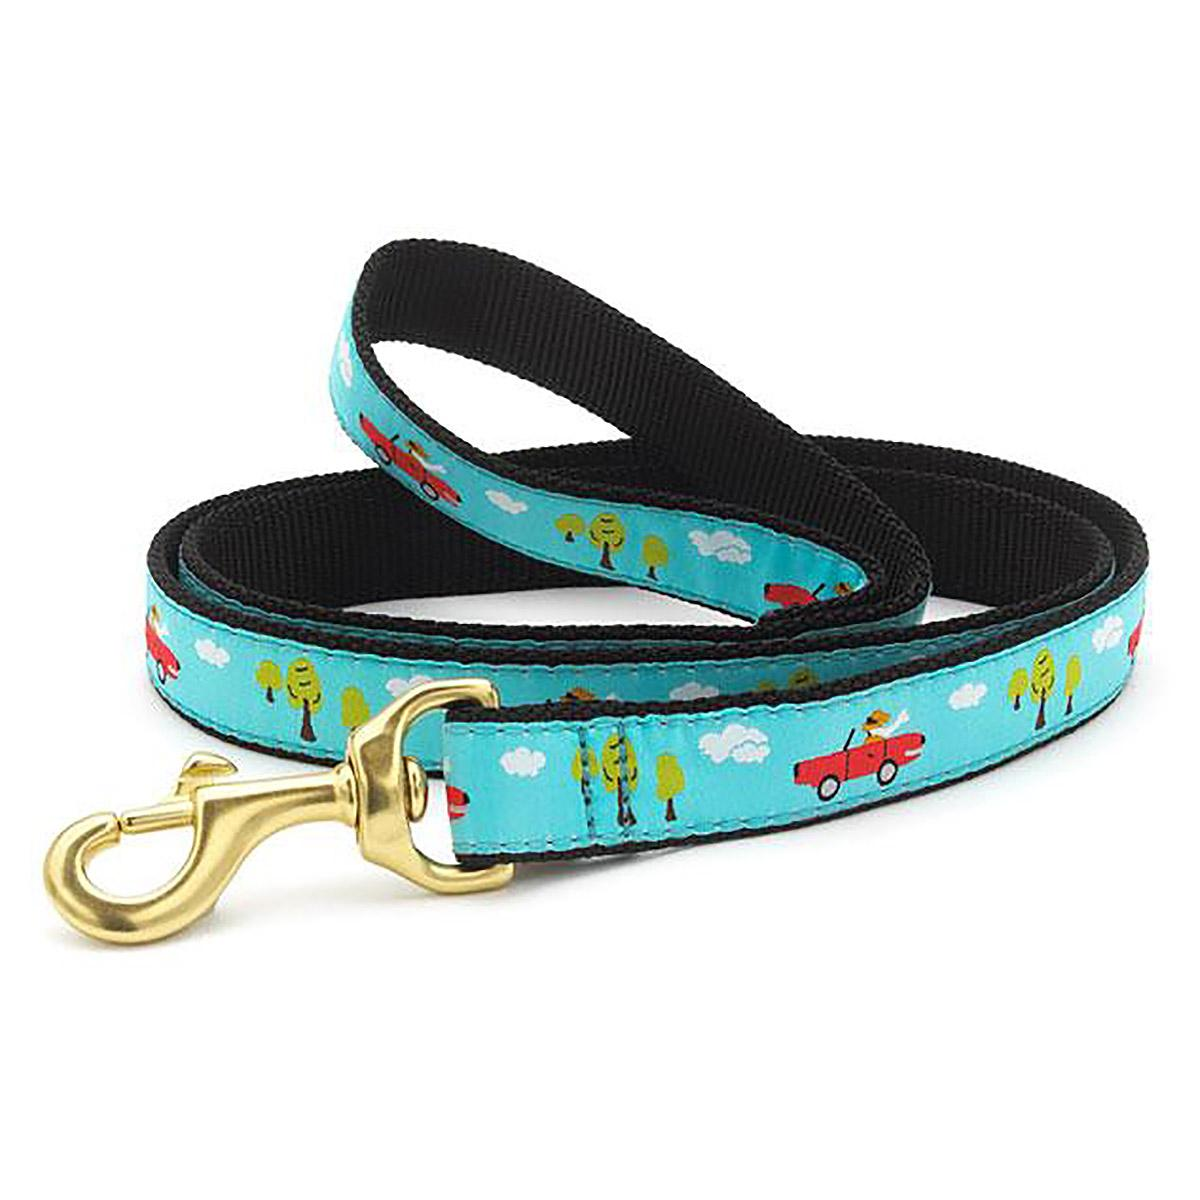 Ragtop Dog Leash by Up Country